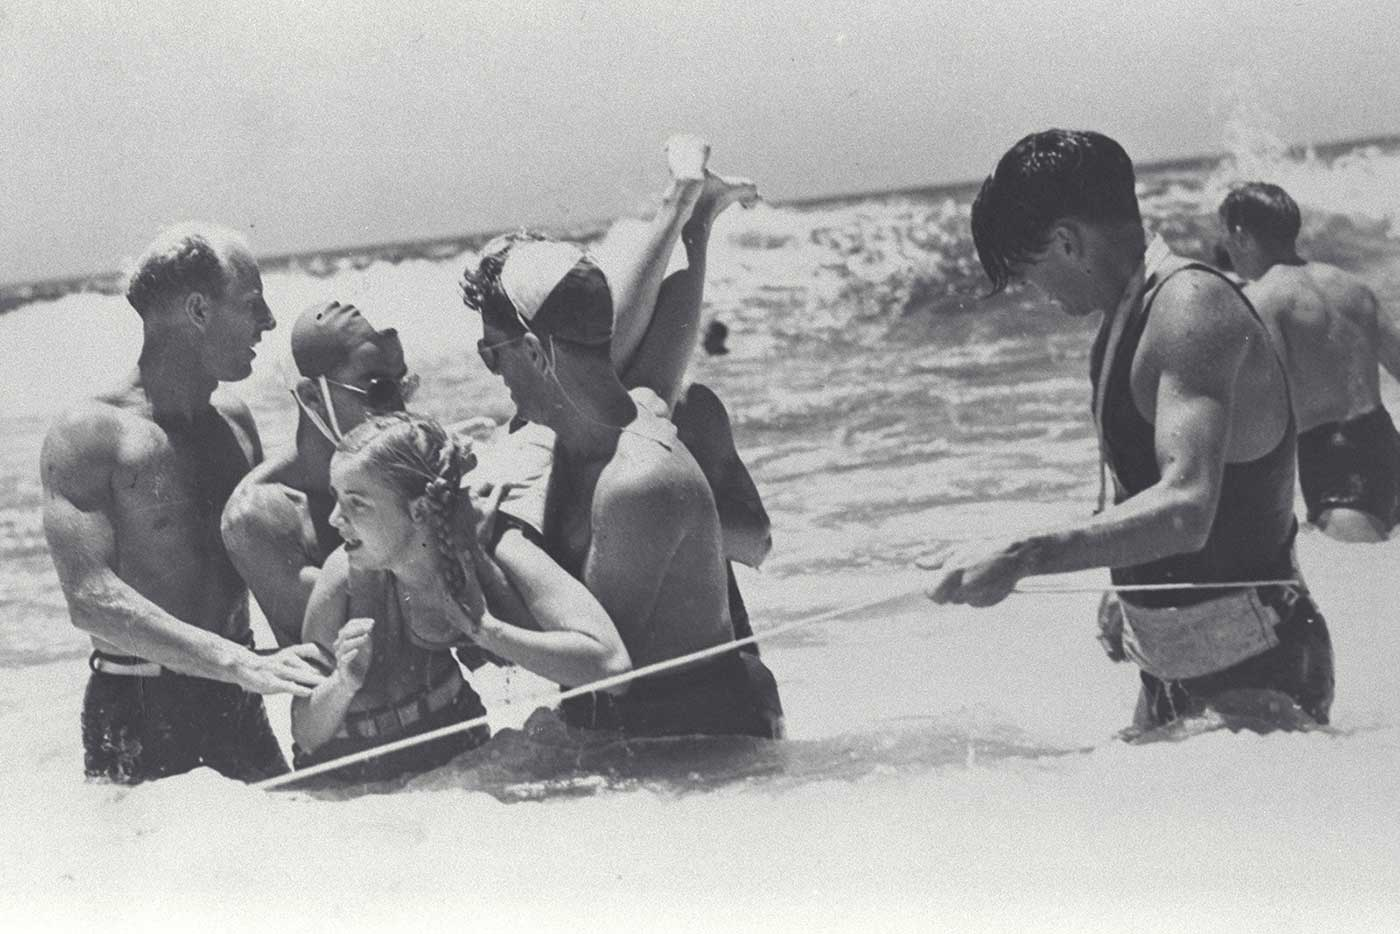 Lifesavers rescuing a young girl struggling in the surf at Kirra, Queensland in 1948.